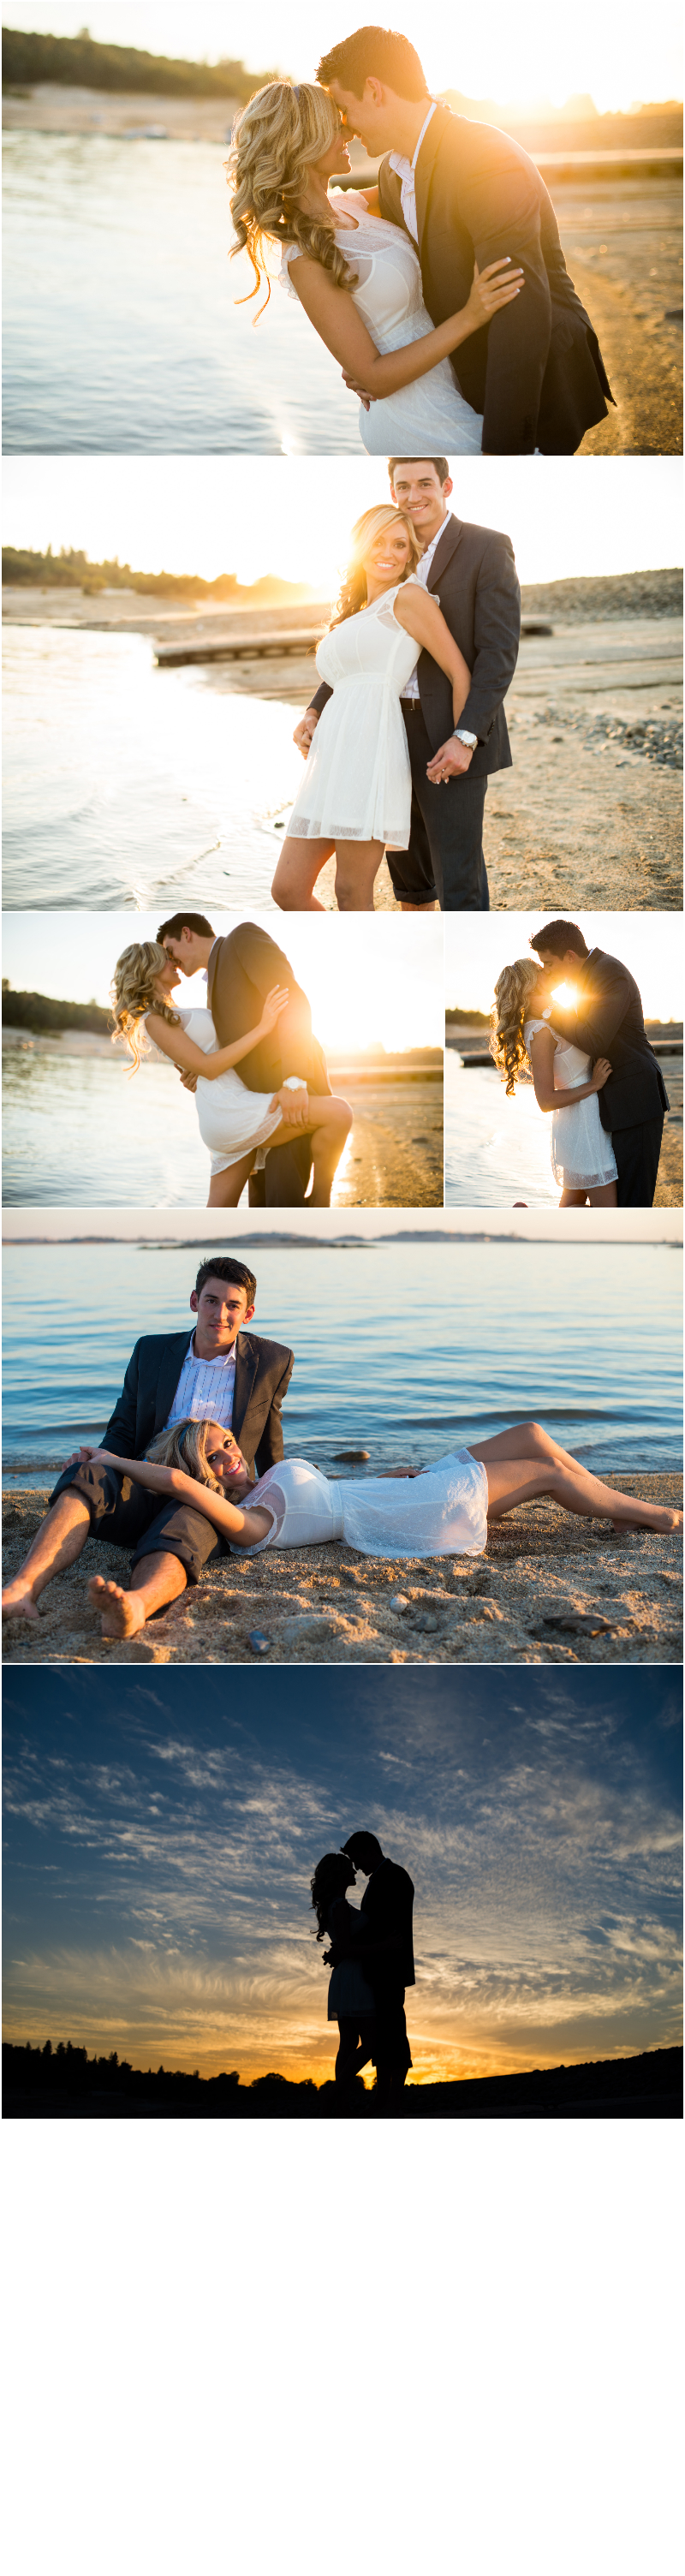 folsom lake couple at beach photographing before wedding day